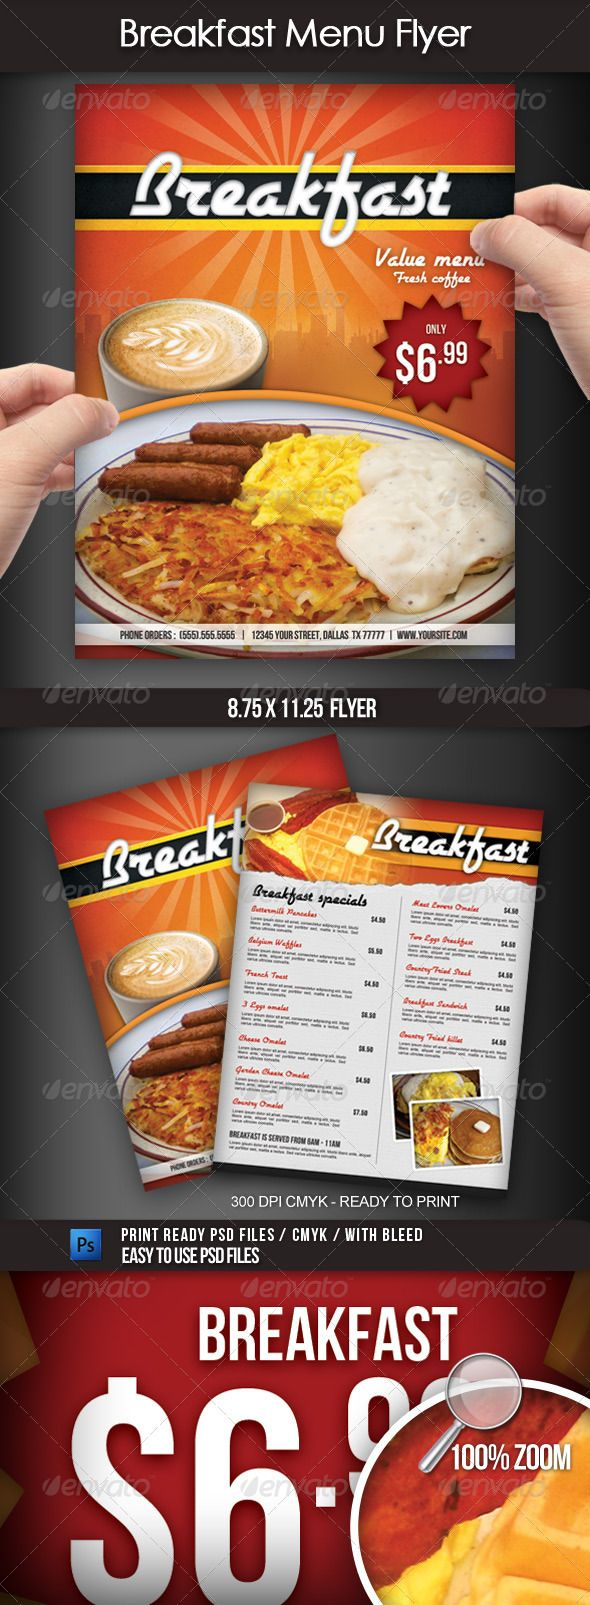 breakfast menu flyer breakfast menu fonts and bacon here we re sharing some delicious best restaurant and food flyer templates a flyer or leaflet is a type of paper advertising campaign meant for broad